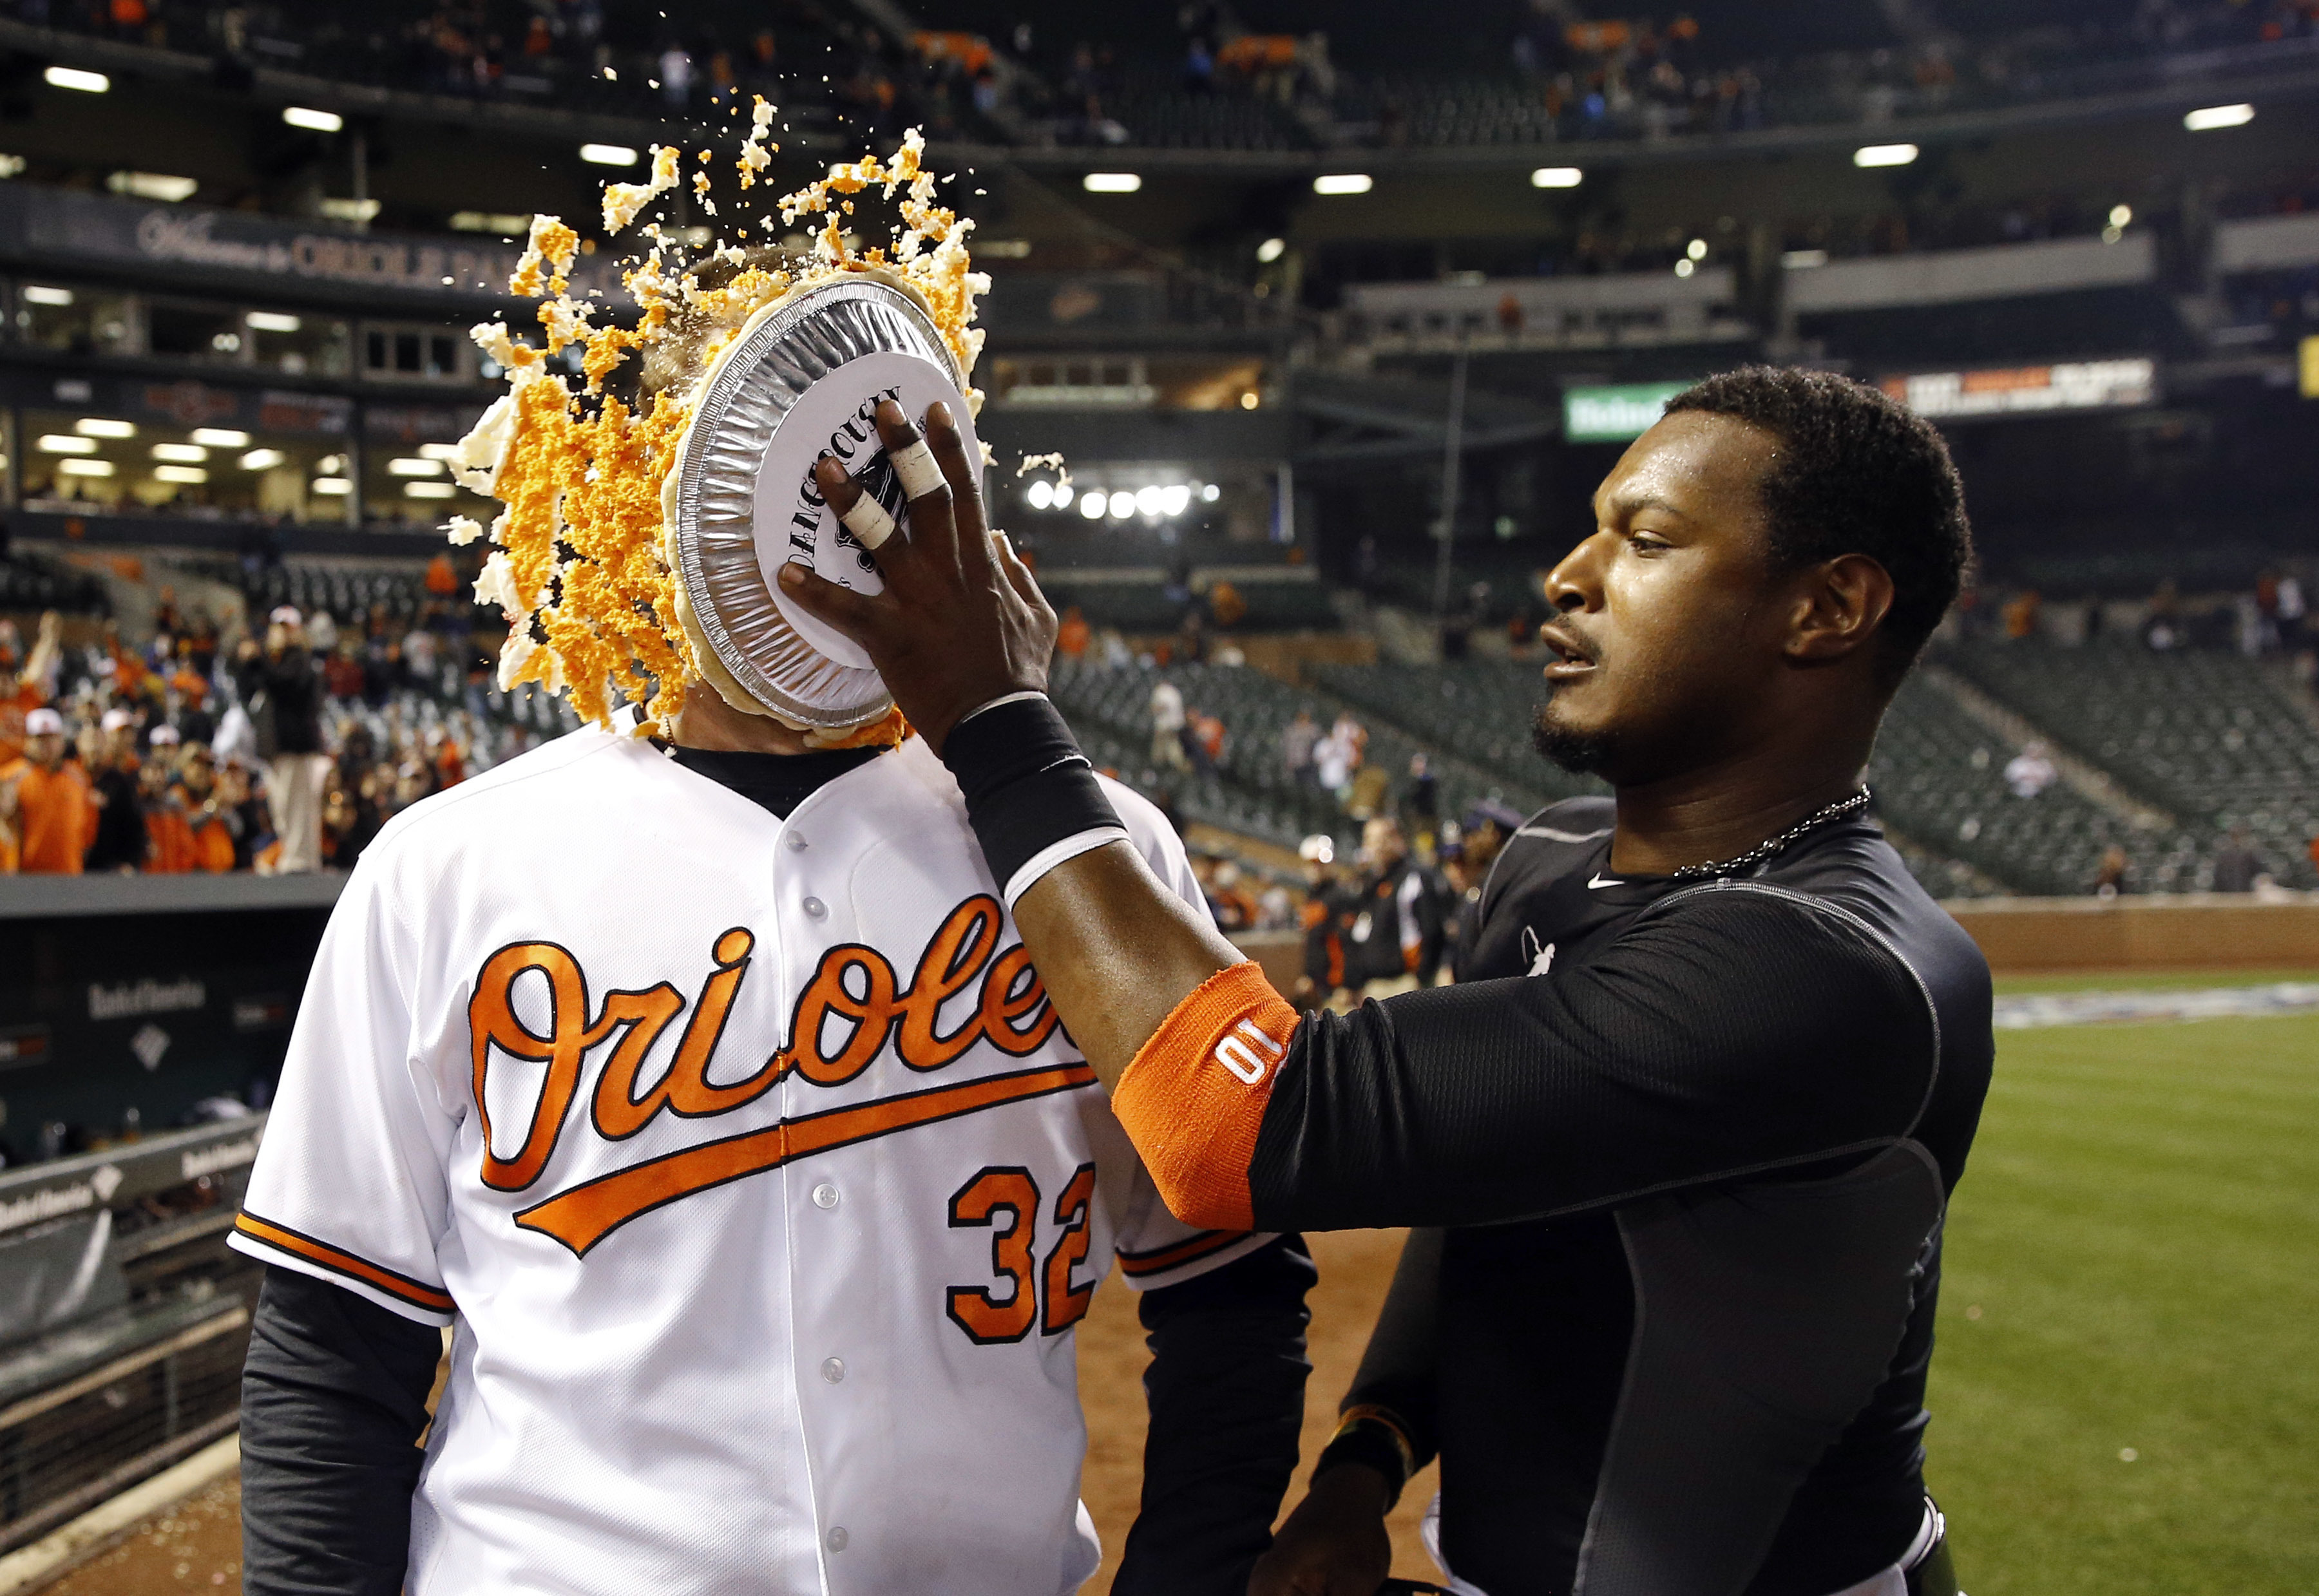 When an Oriole gets pied, this bakery swells with pride